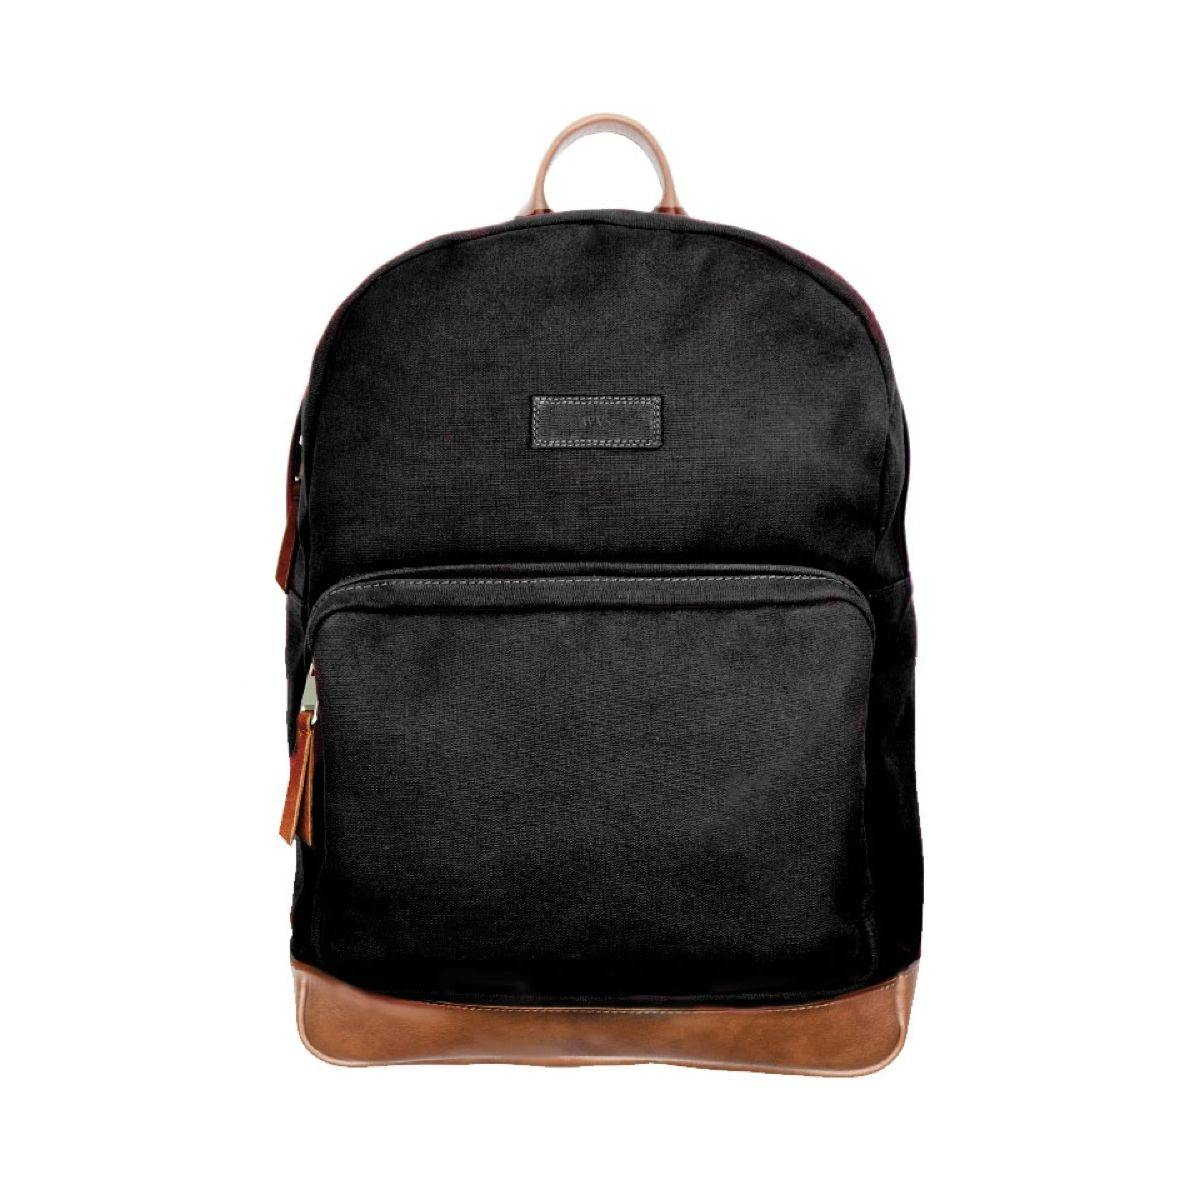 Will's Vegan ラージバックパック Large Backpack - ハッピーキヌア